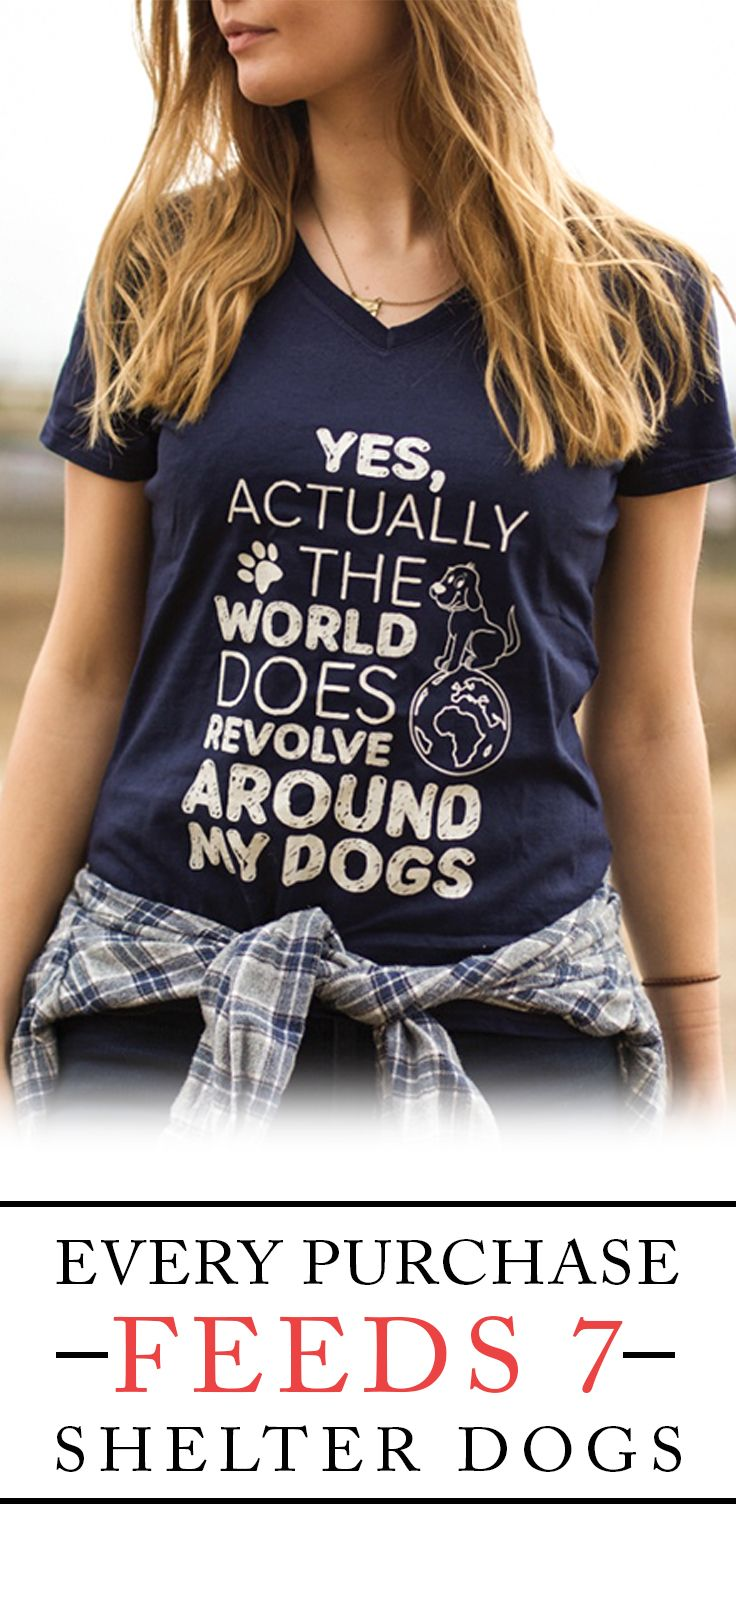 Would you wear this shirt? Comment below!  Every purchase feeds 7 shelter dogs!